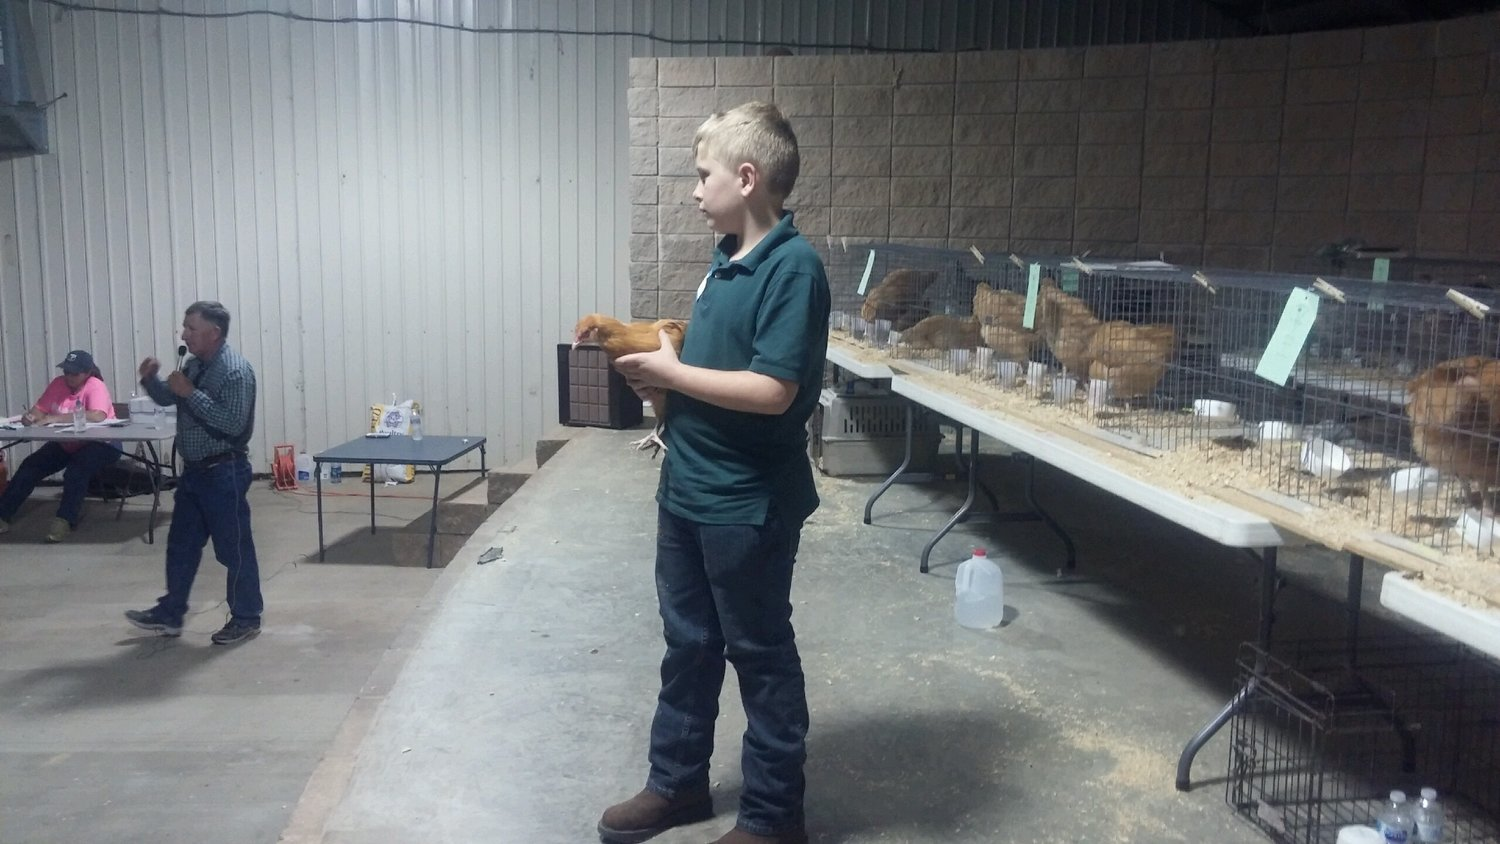 Alabama 4-H students from Walker and Winston County will show the chickens they have raised as part of the 2018 Chick Chain project on Saturday, Sept. 29 at 4 p.m. at the Northwest Alabama Fair. The chickens will be auctioned beginning at 6 p.m. Breeds include Rhode Island Red, Buff Orpington, Gold Laced Wyandotte's, Barred Plymouth Rock and Easter Eggers.